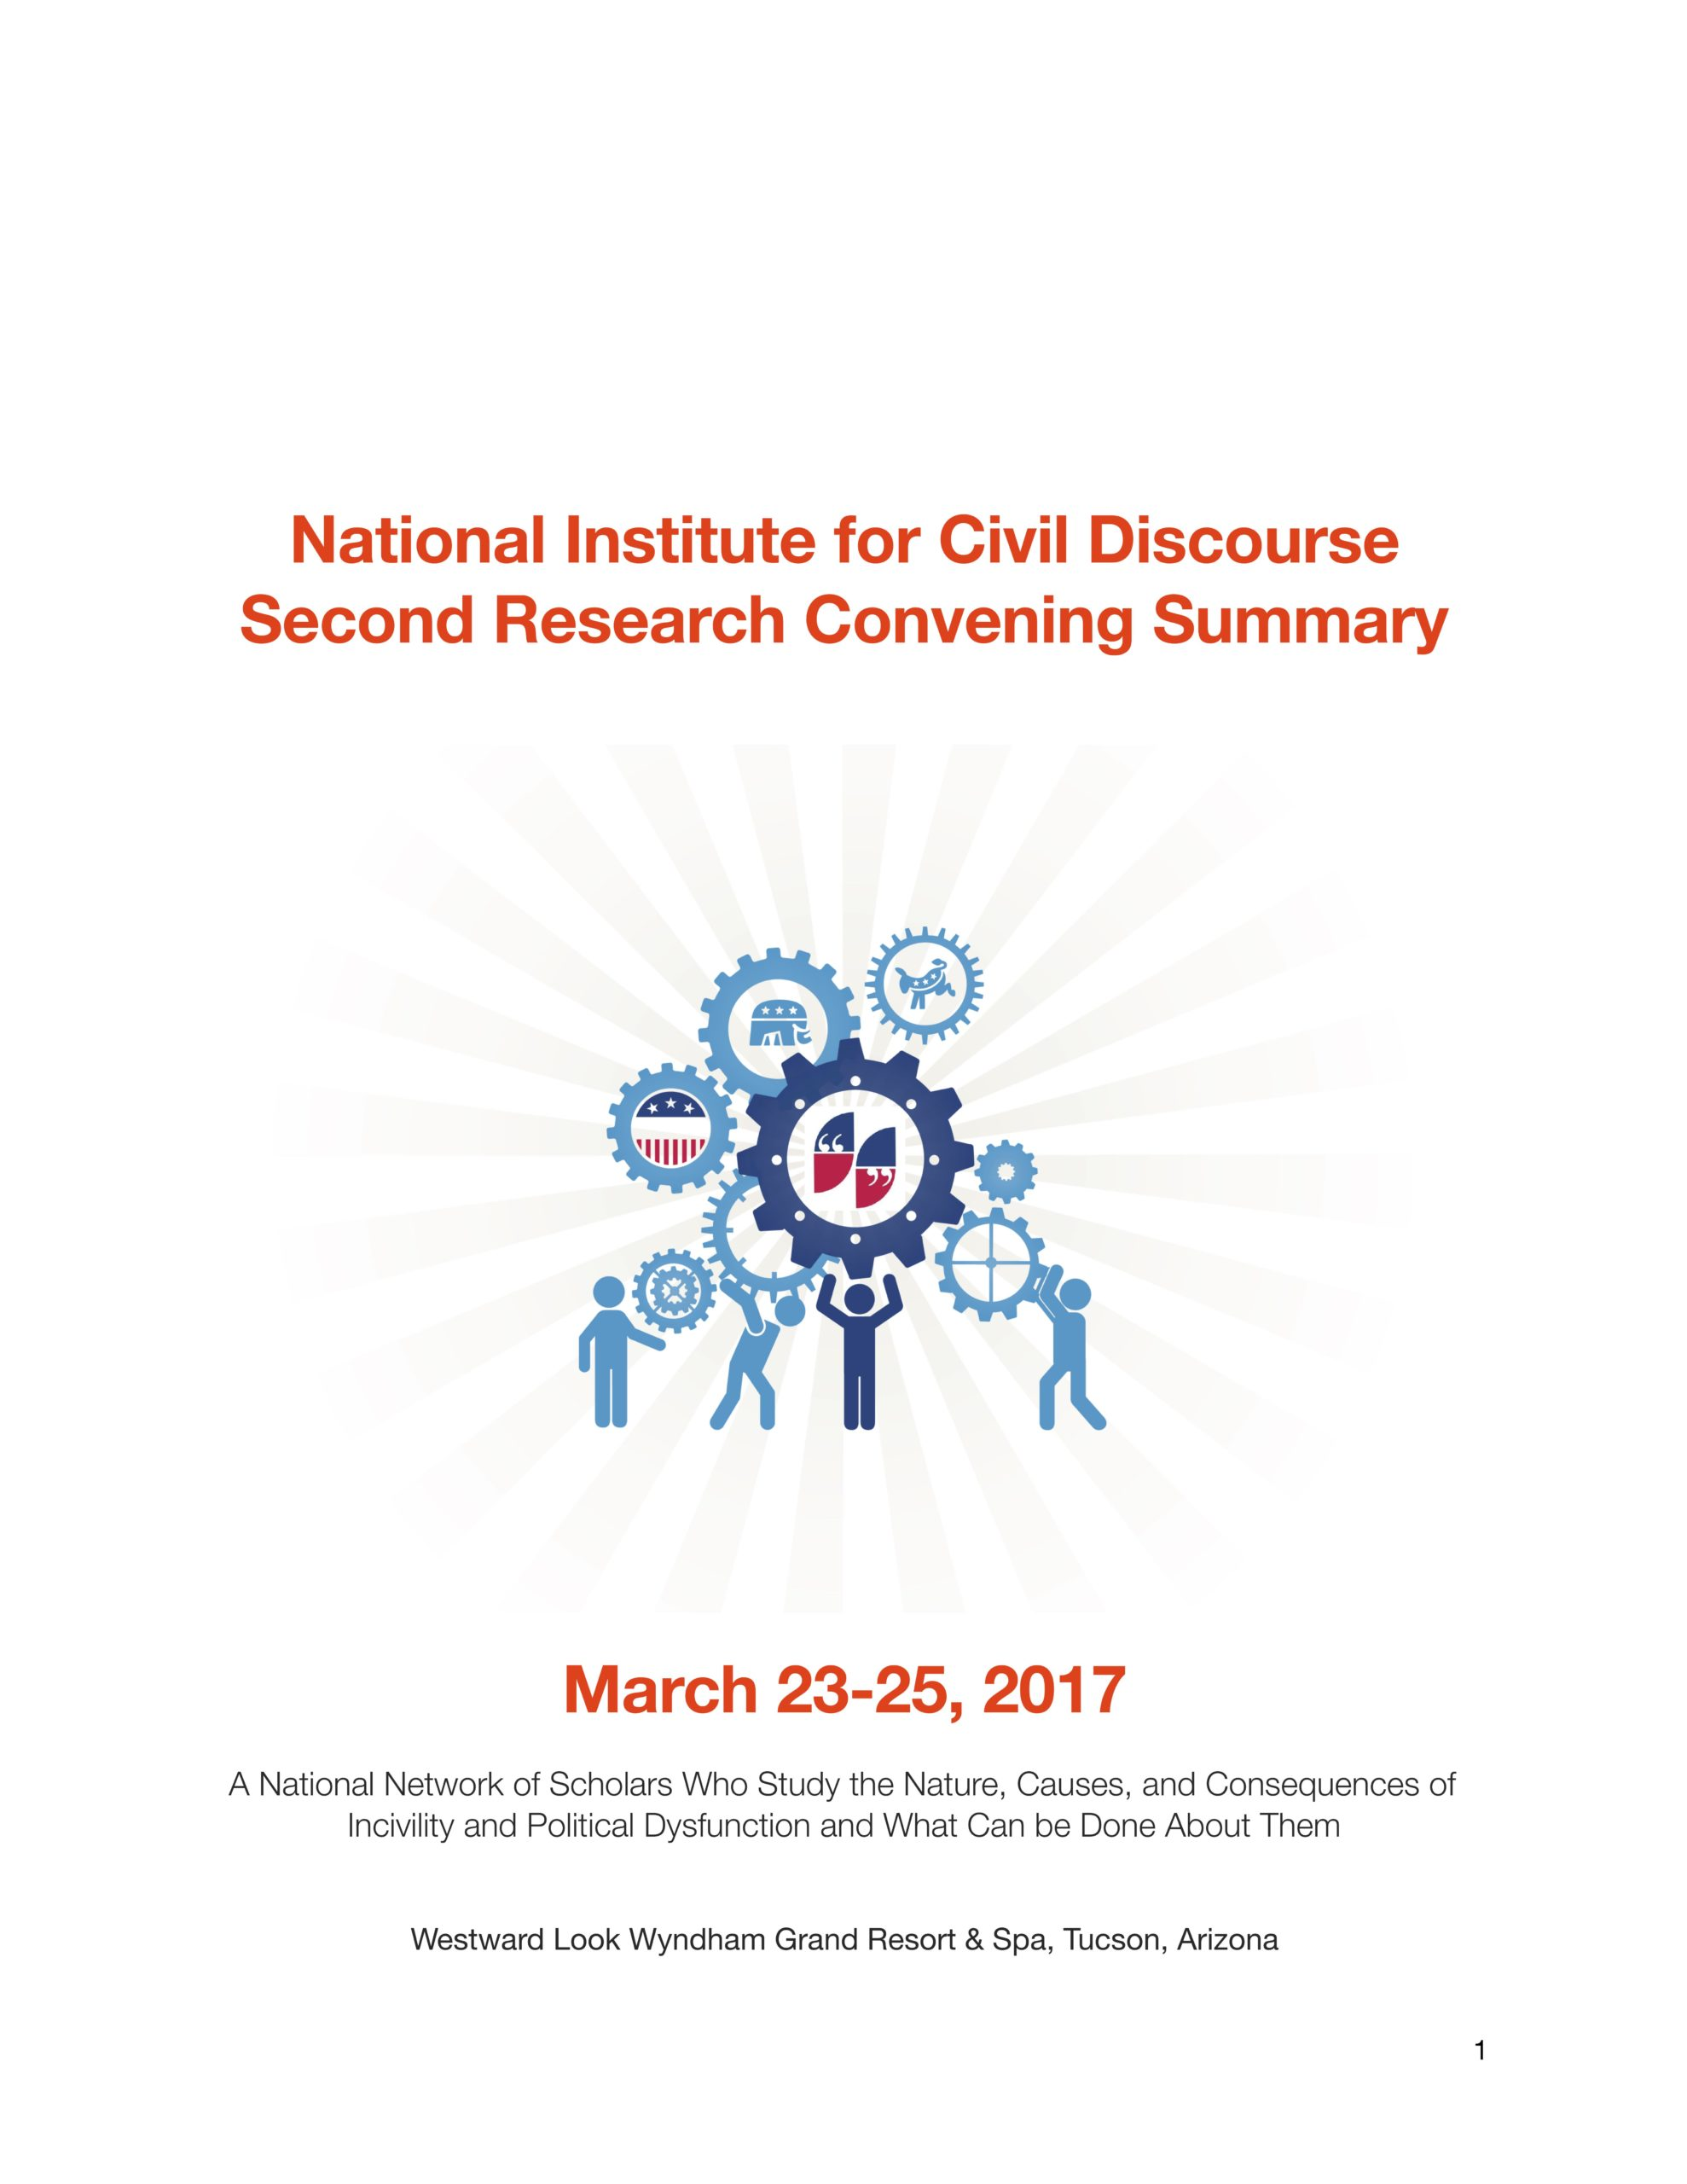 NICD Research Convening 2017